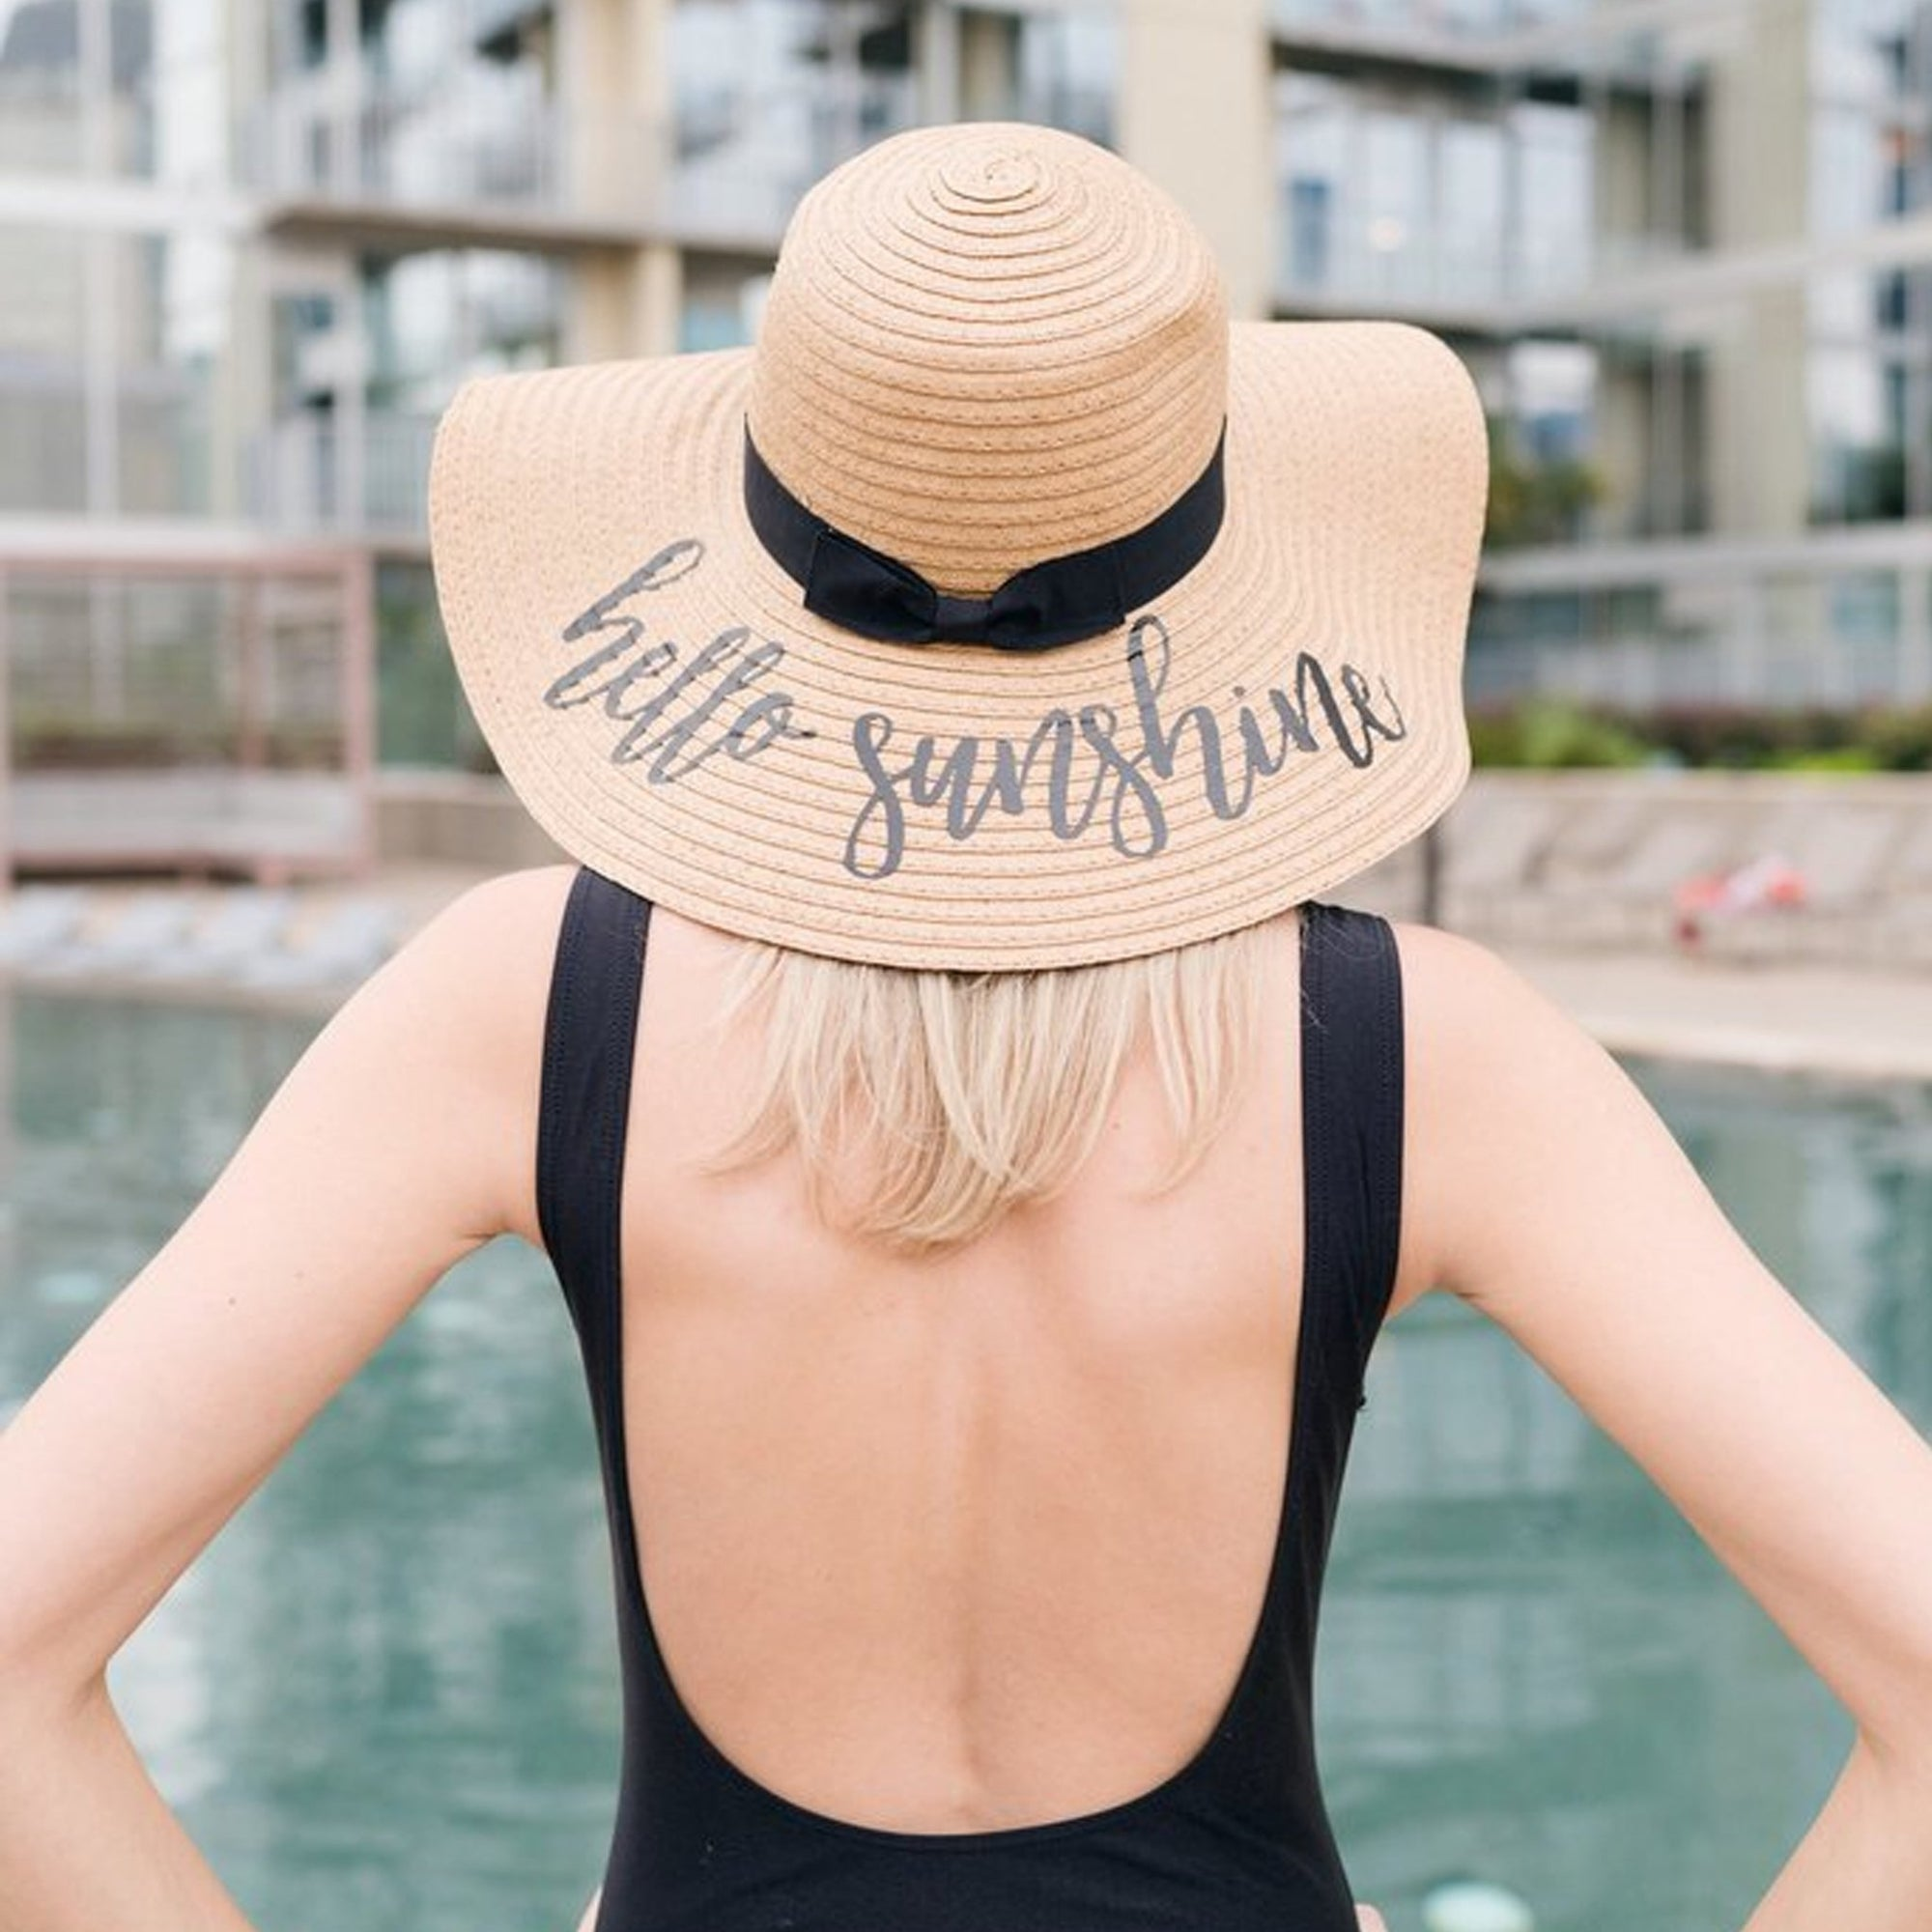 Embroidered Floppy Beach Hats - Sprinkled With Pink #bachelorette #custom #gifts